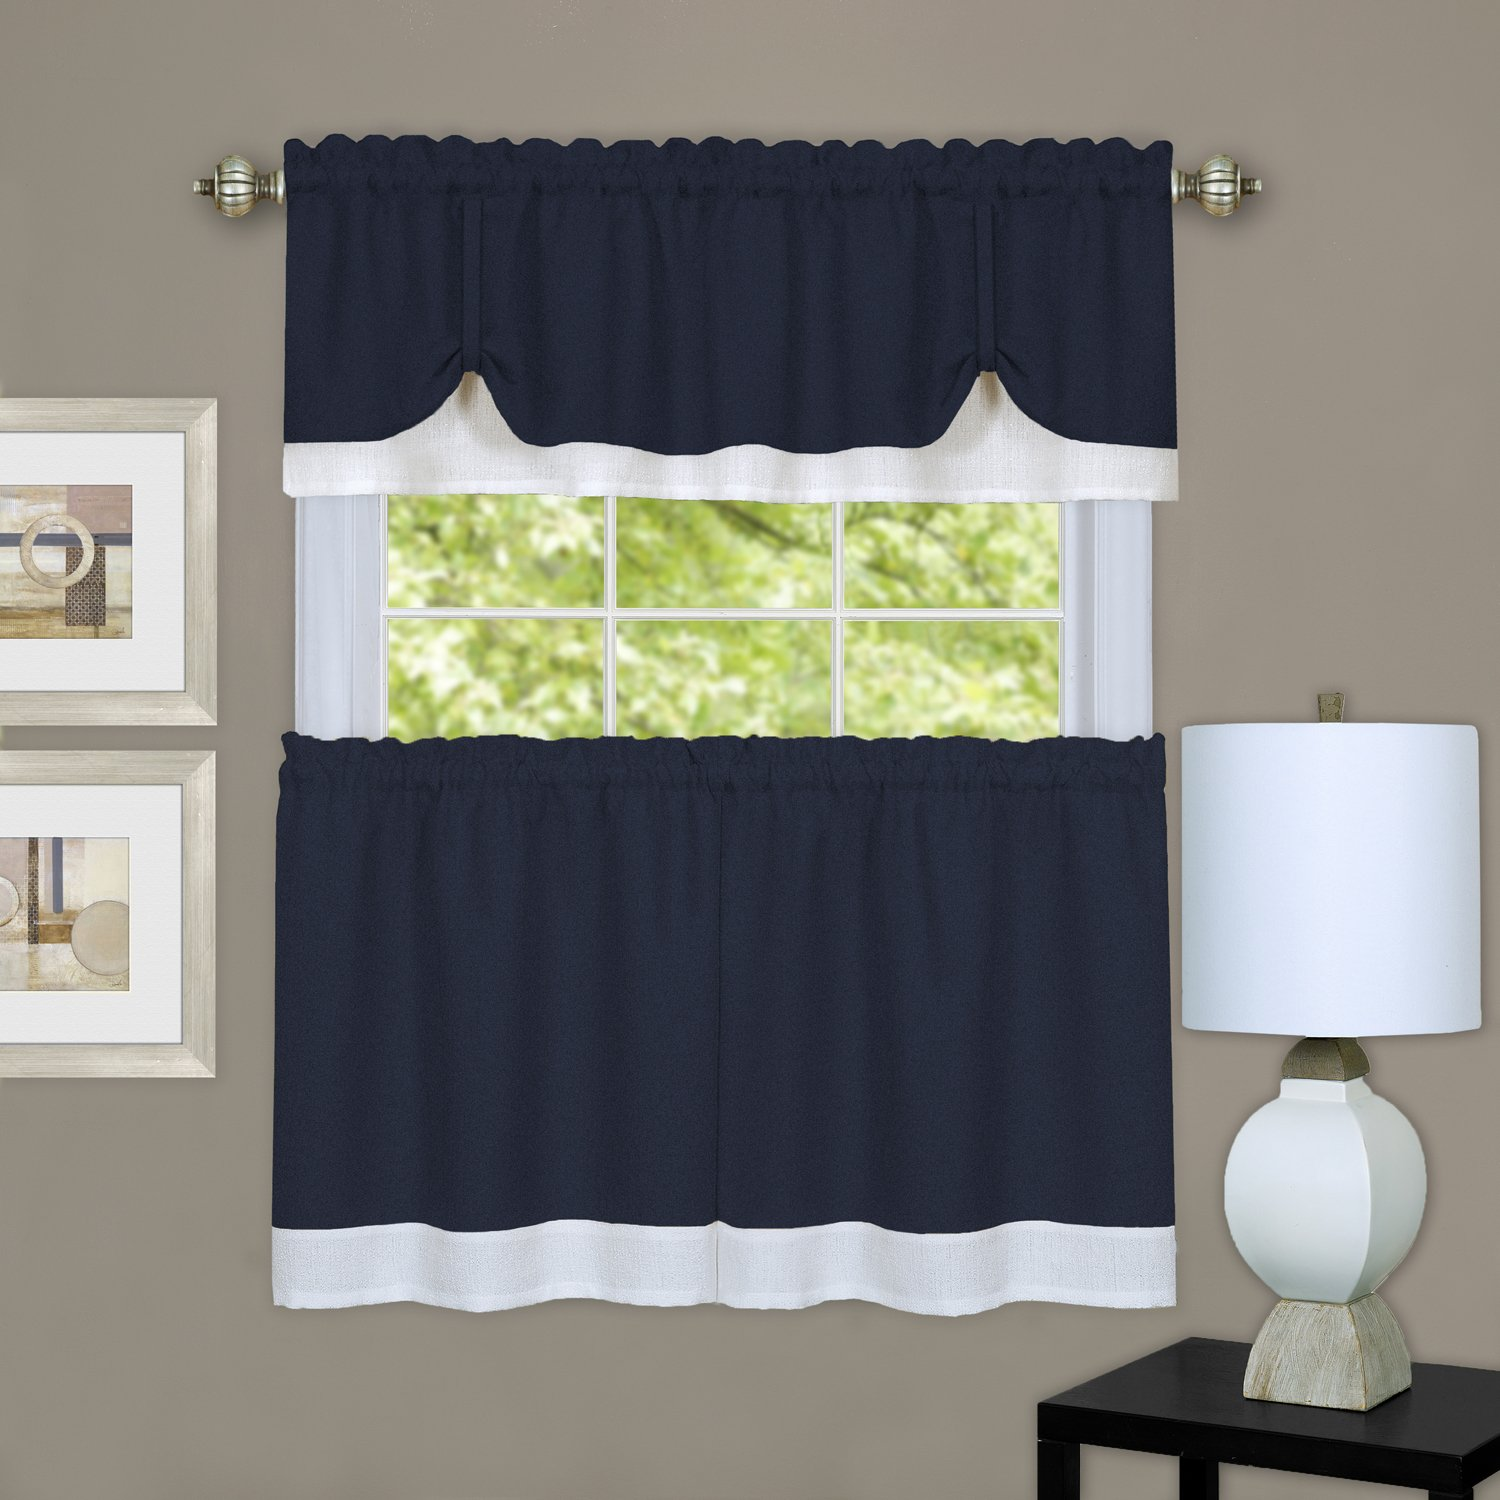 "Achim Home Furnishings Halley Curtain in a Bag Full Window Solution, Merlot, 56 x 84-Inch, Tier Pair 58"" x 36"" with 14"" Valance, Navy & White"